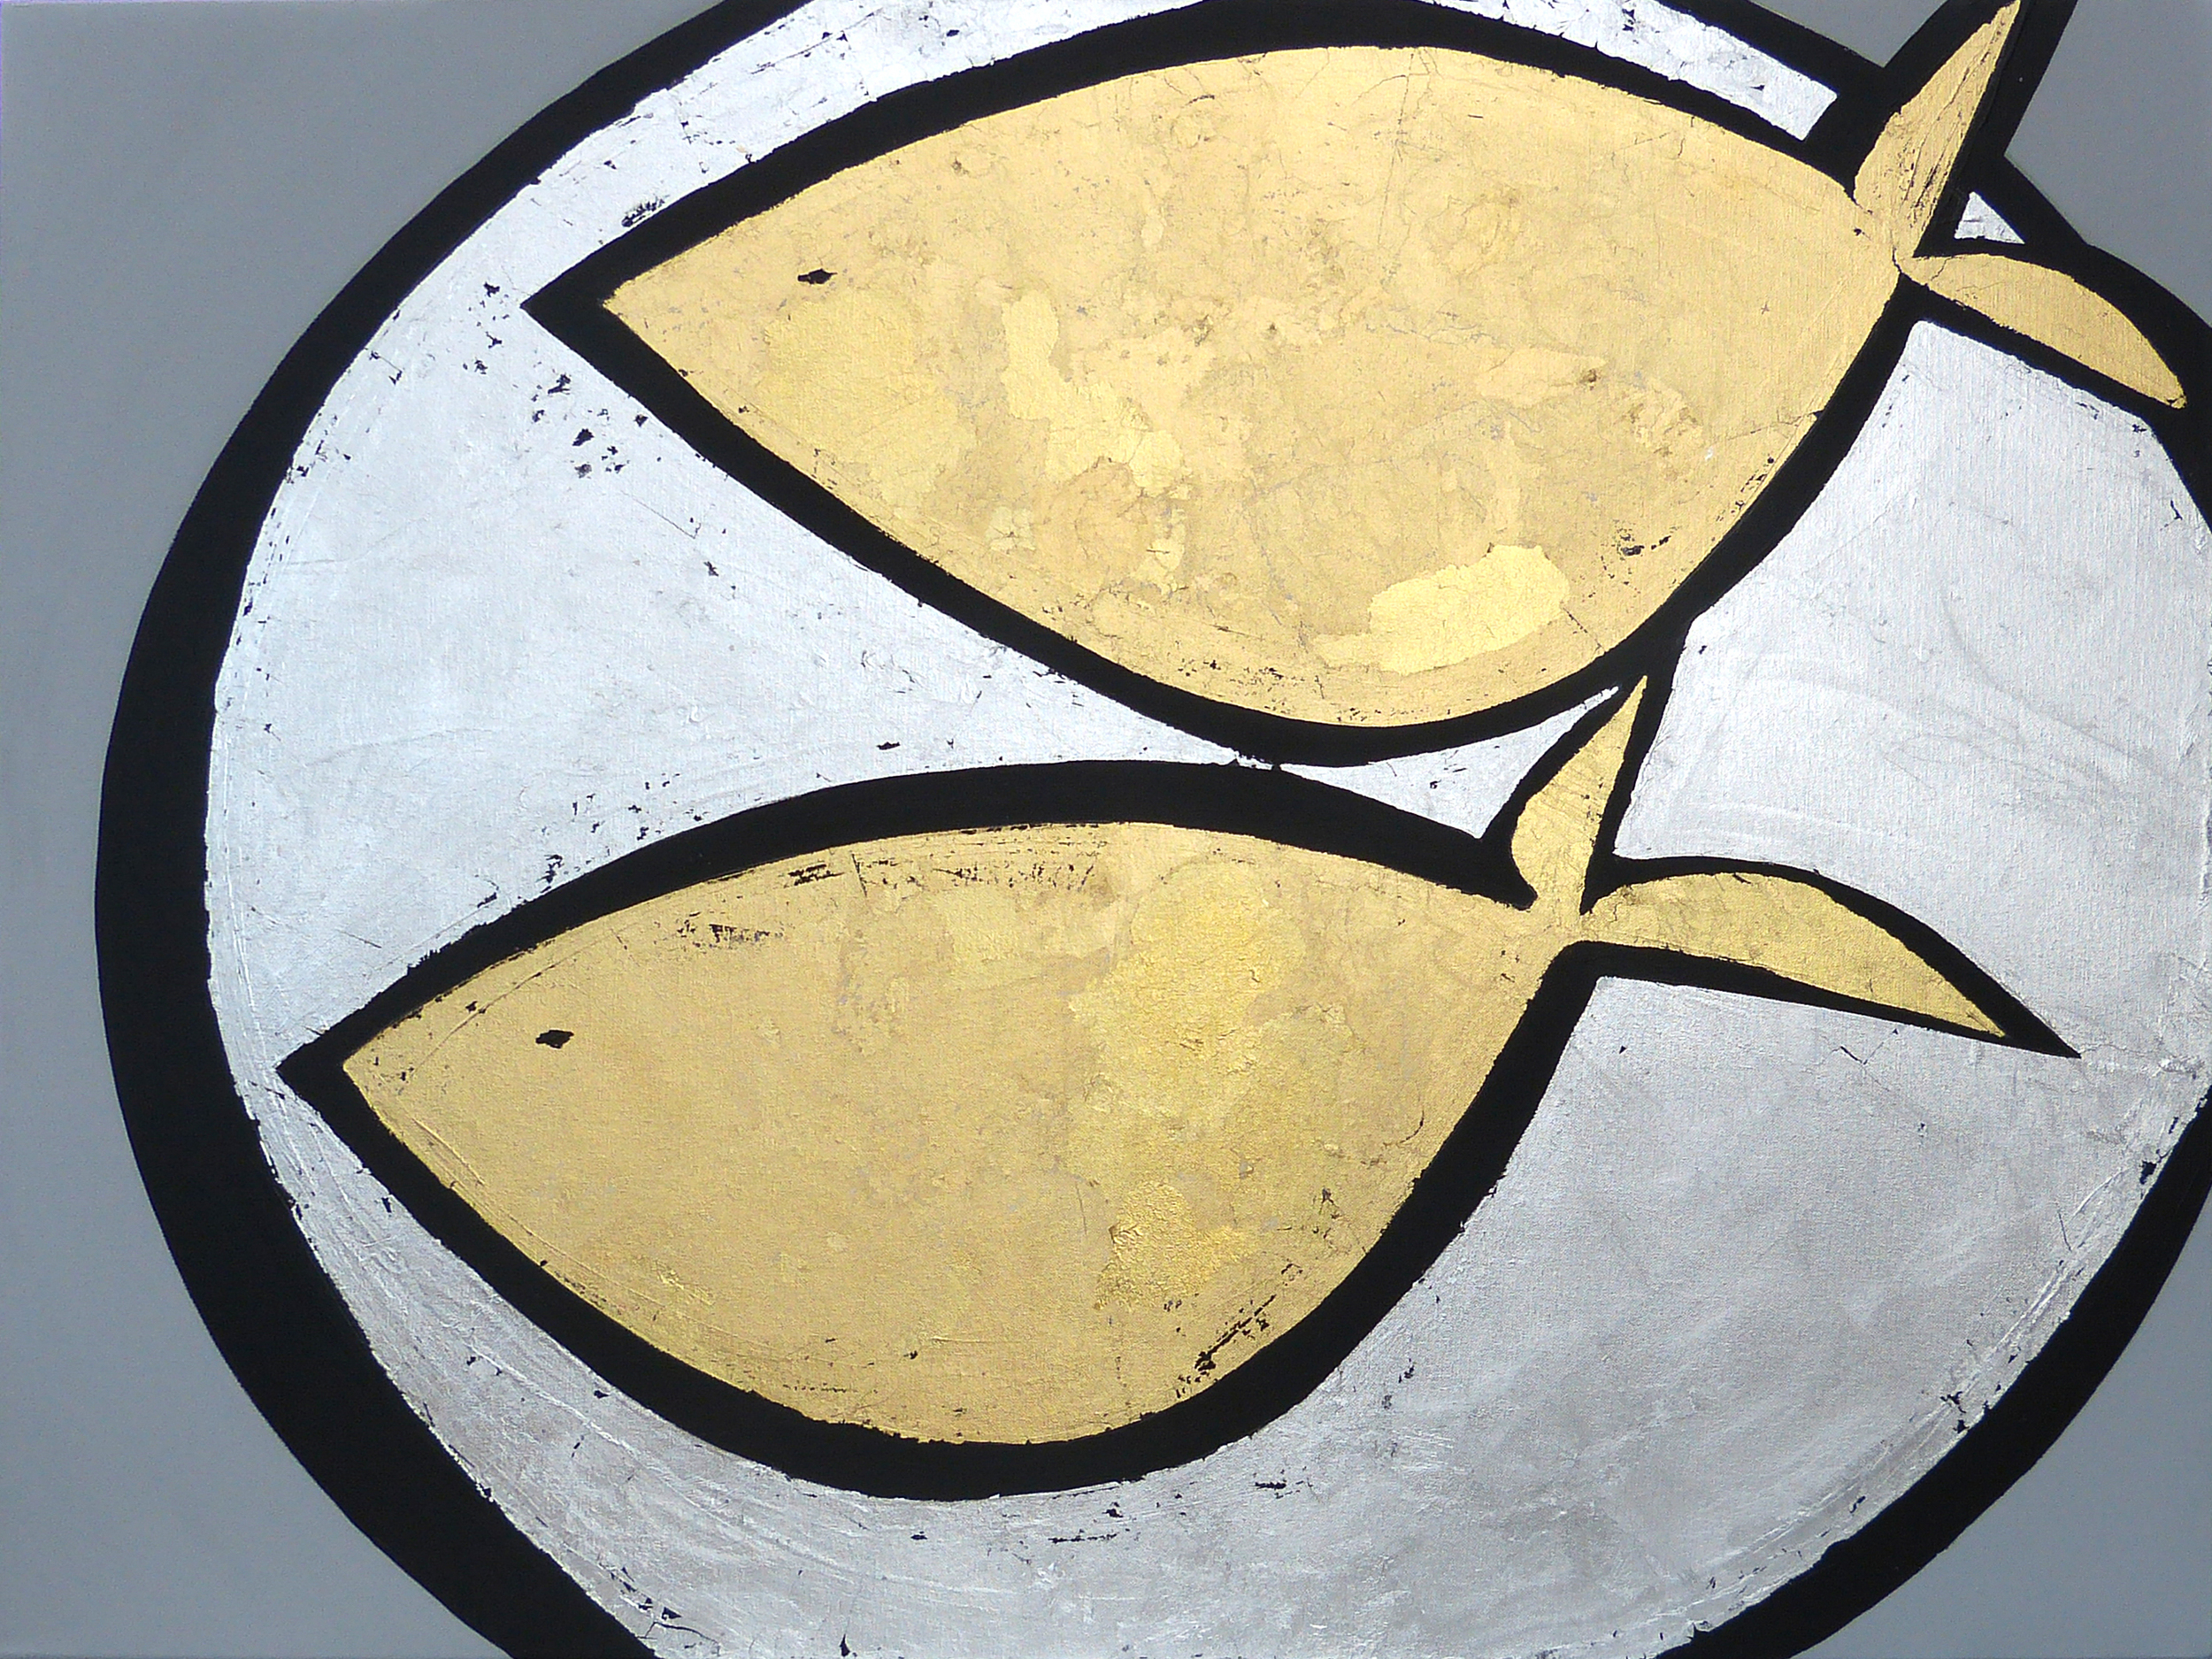 FAT FISH  102x76cm | acrylic on canvas with silver and gold leaf| £1,200.00 |SOLD